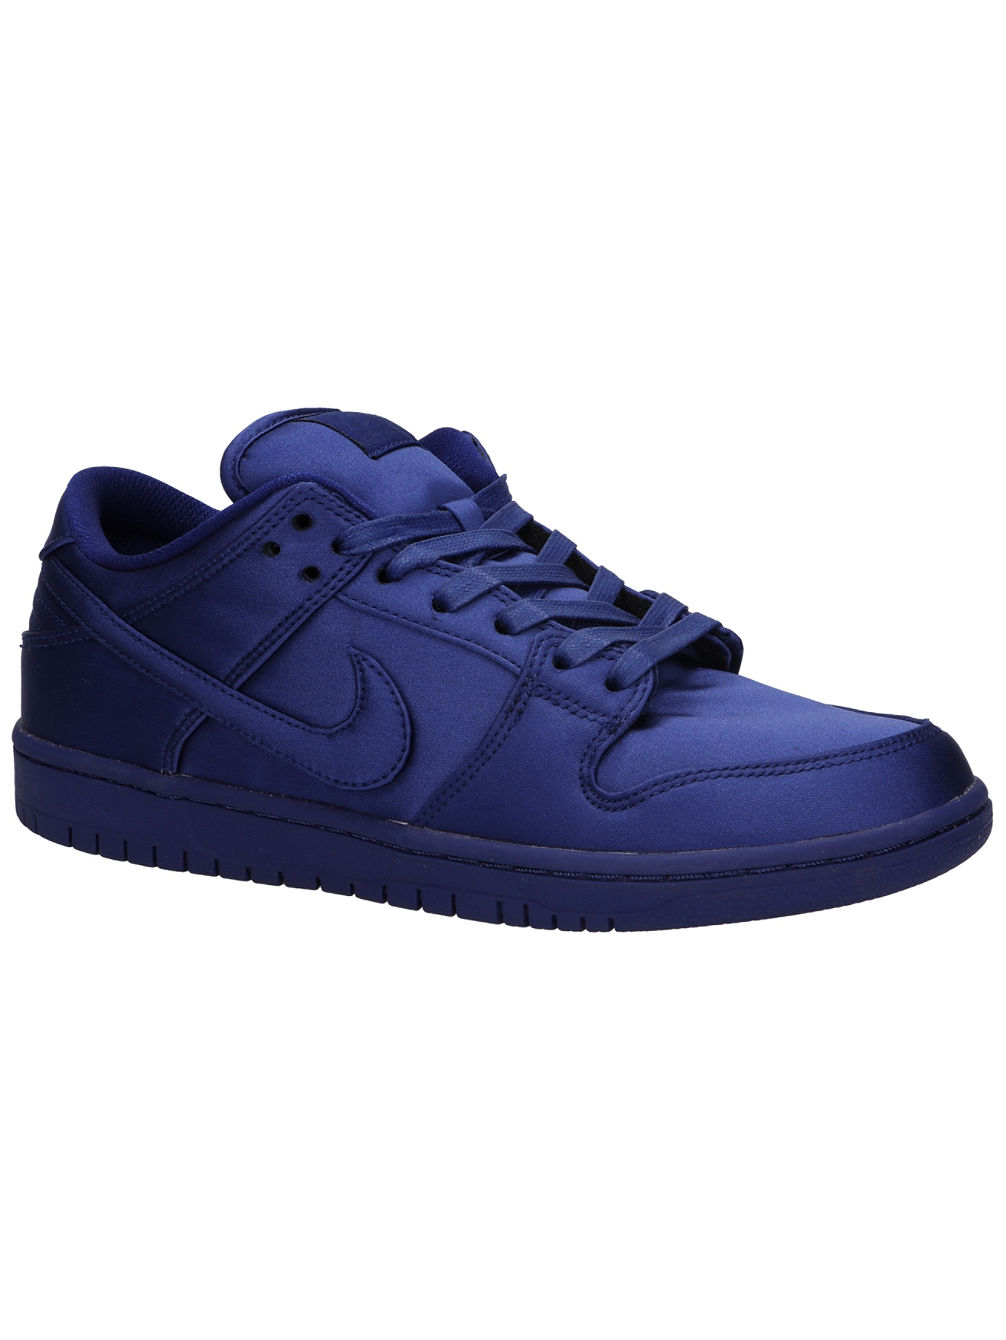 best service 25965 a0bf7 SB Dunk Low TRD NBA Sneakers